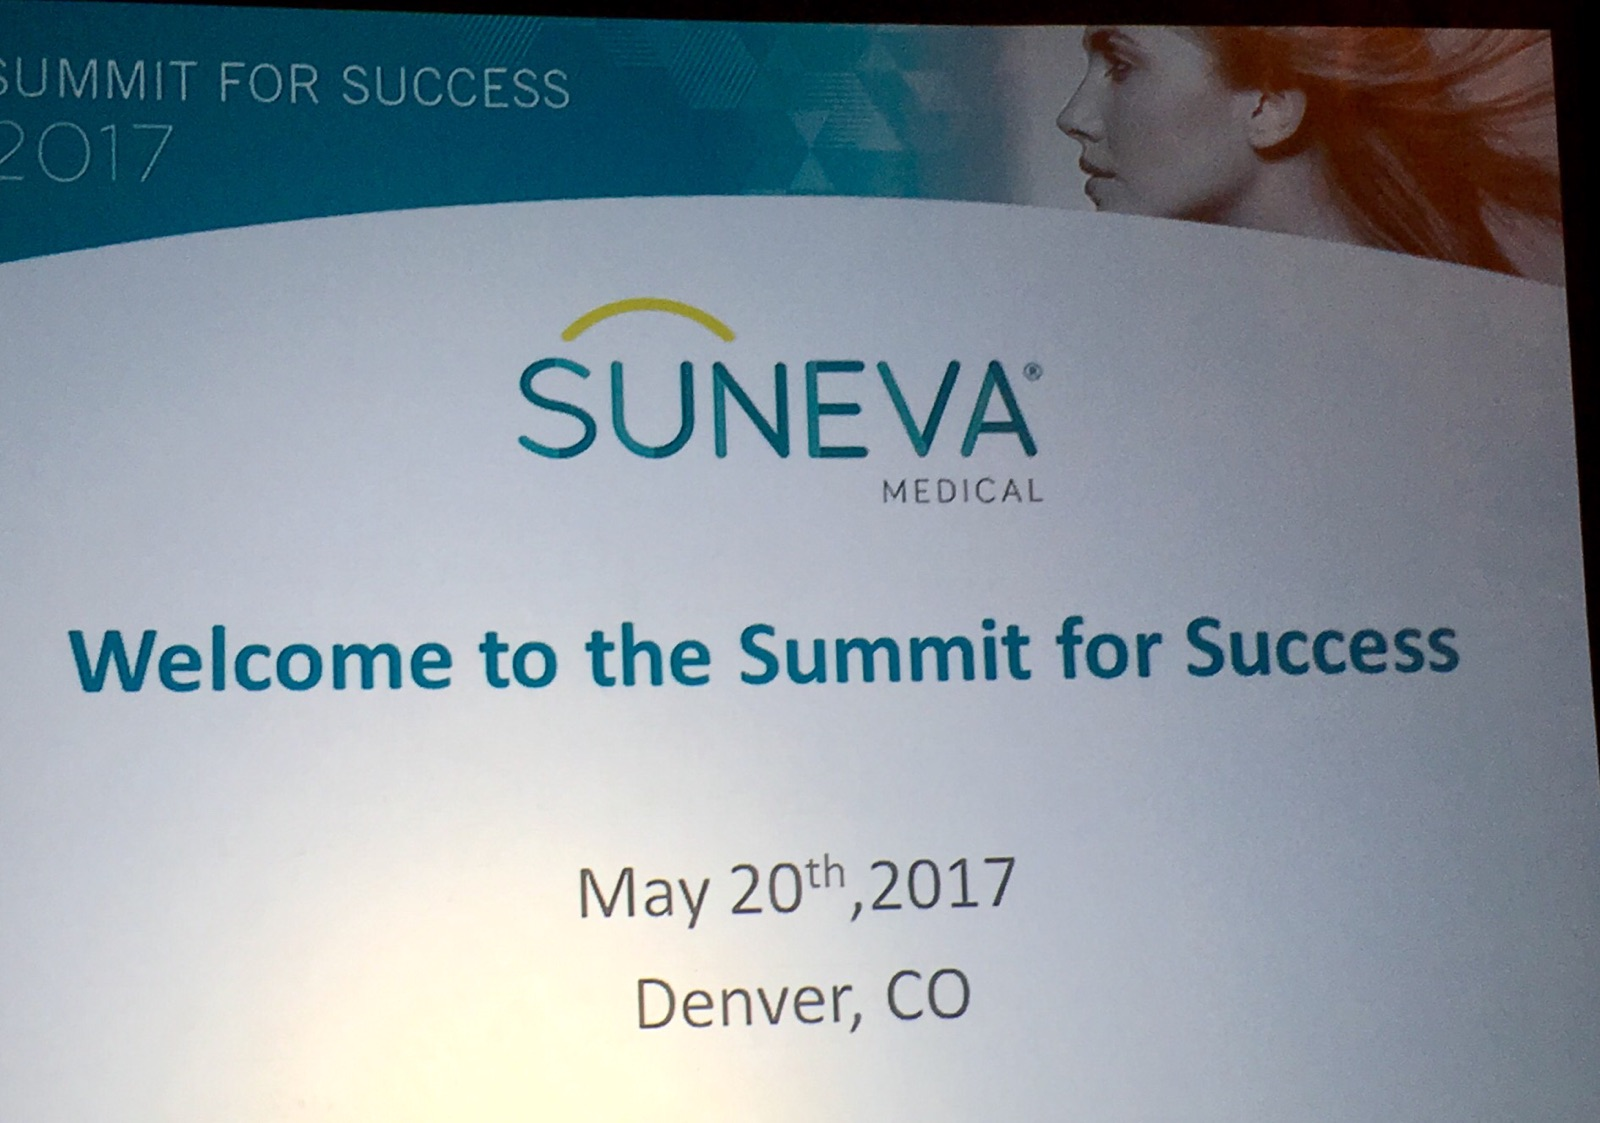 Suneva Summit for Success poster